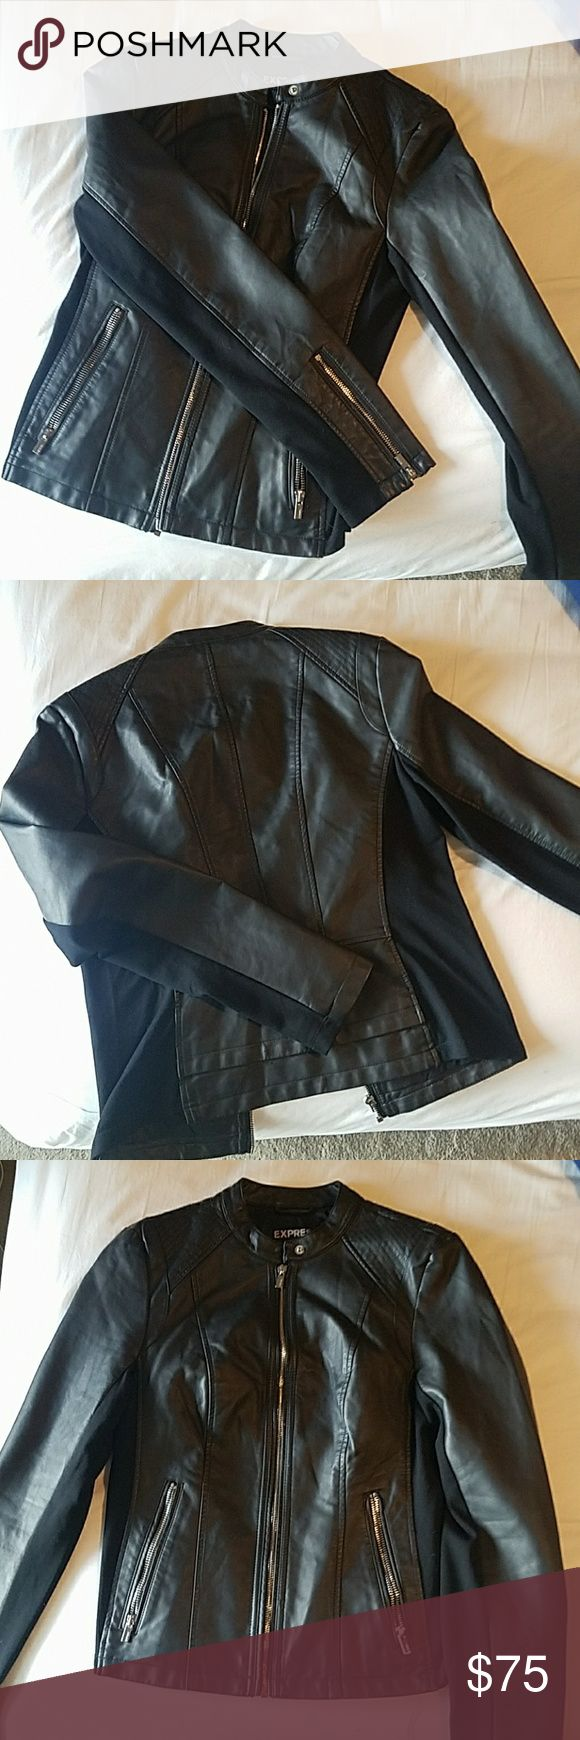 Vegan leather jacket Brand new jacket worn one time. Super cute and very good condition. Has a different material under the arms and side 2 zipper pockets Will accept best offer Express Jackets & Coats Blazers